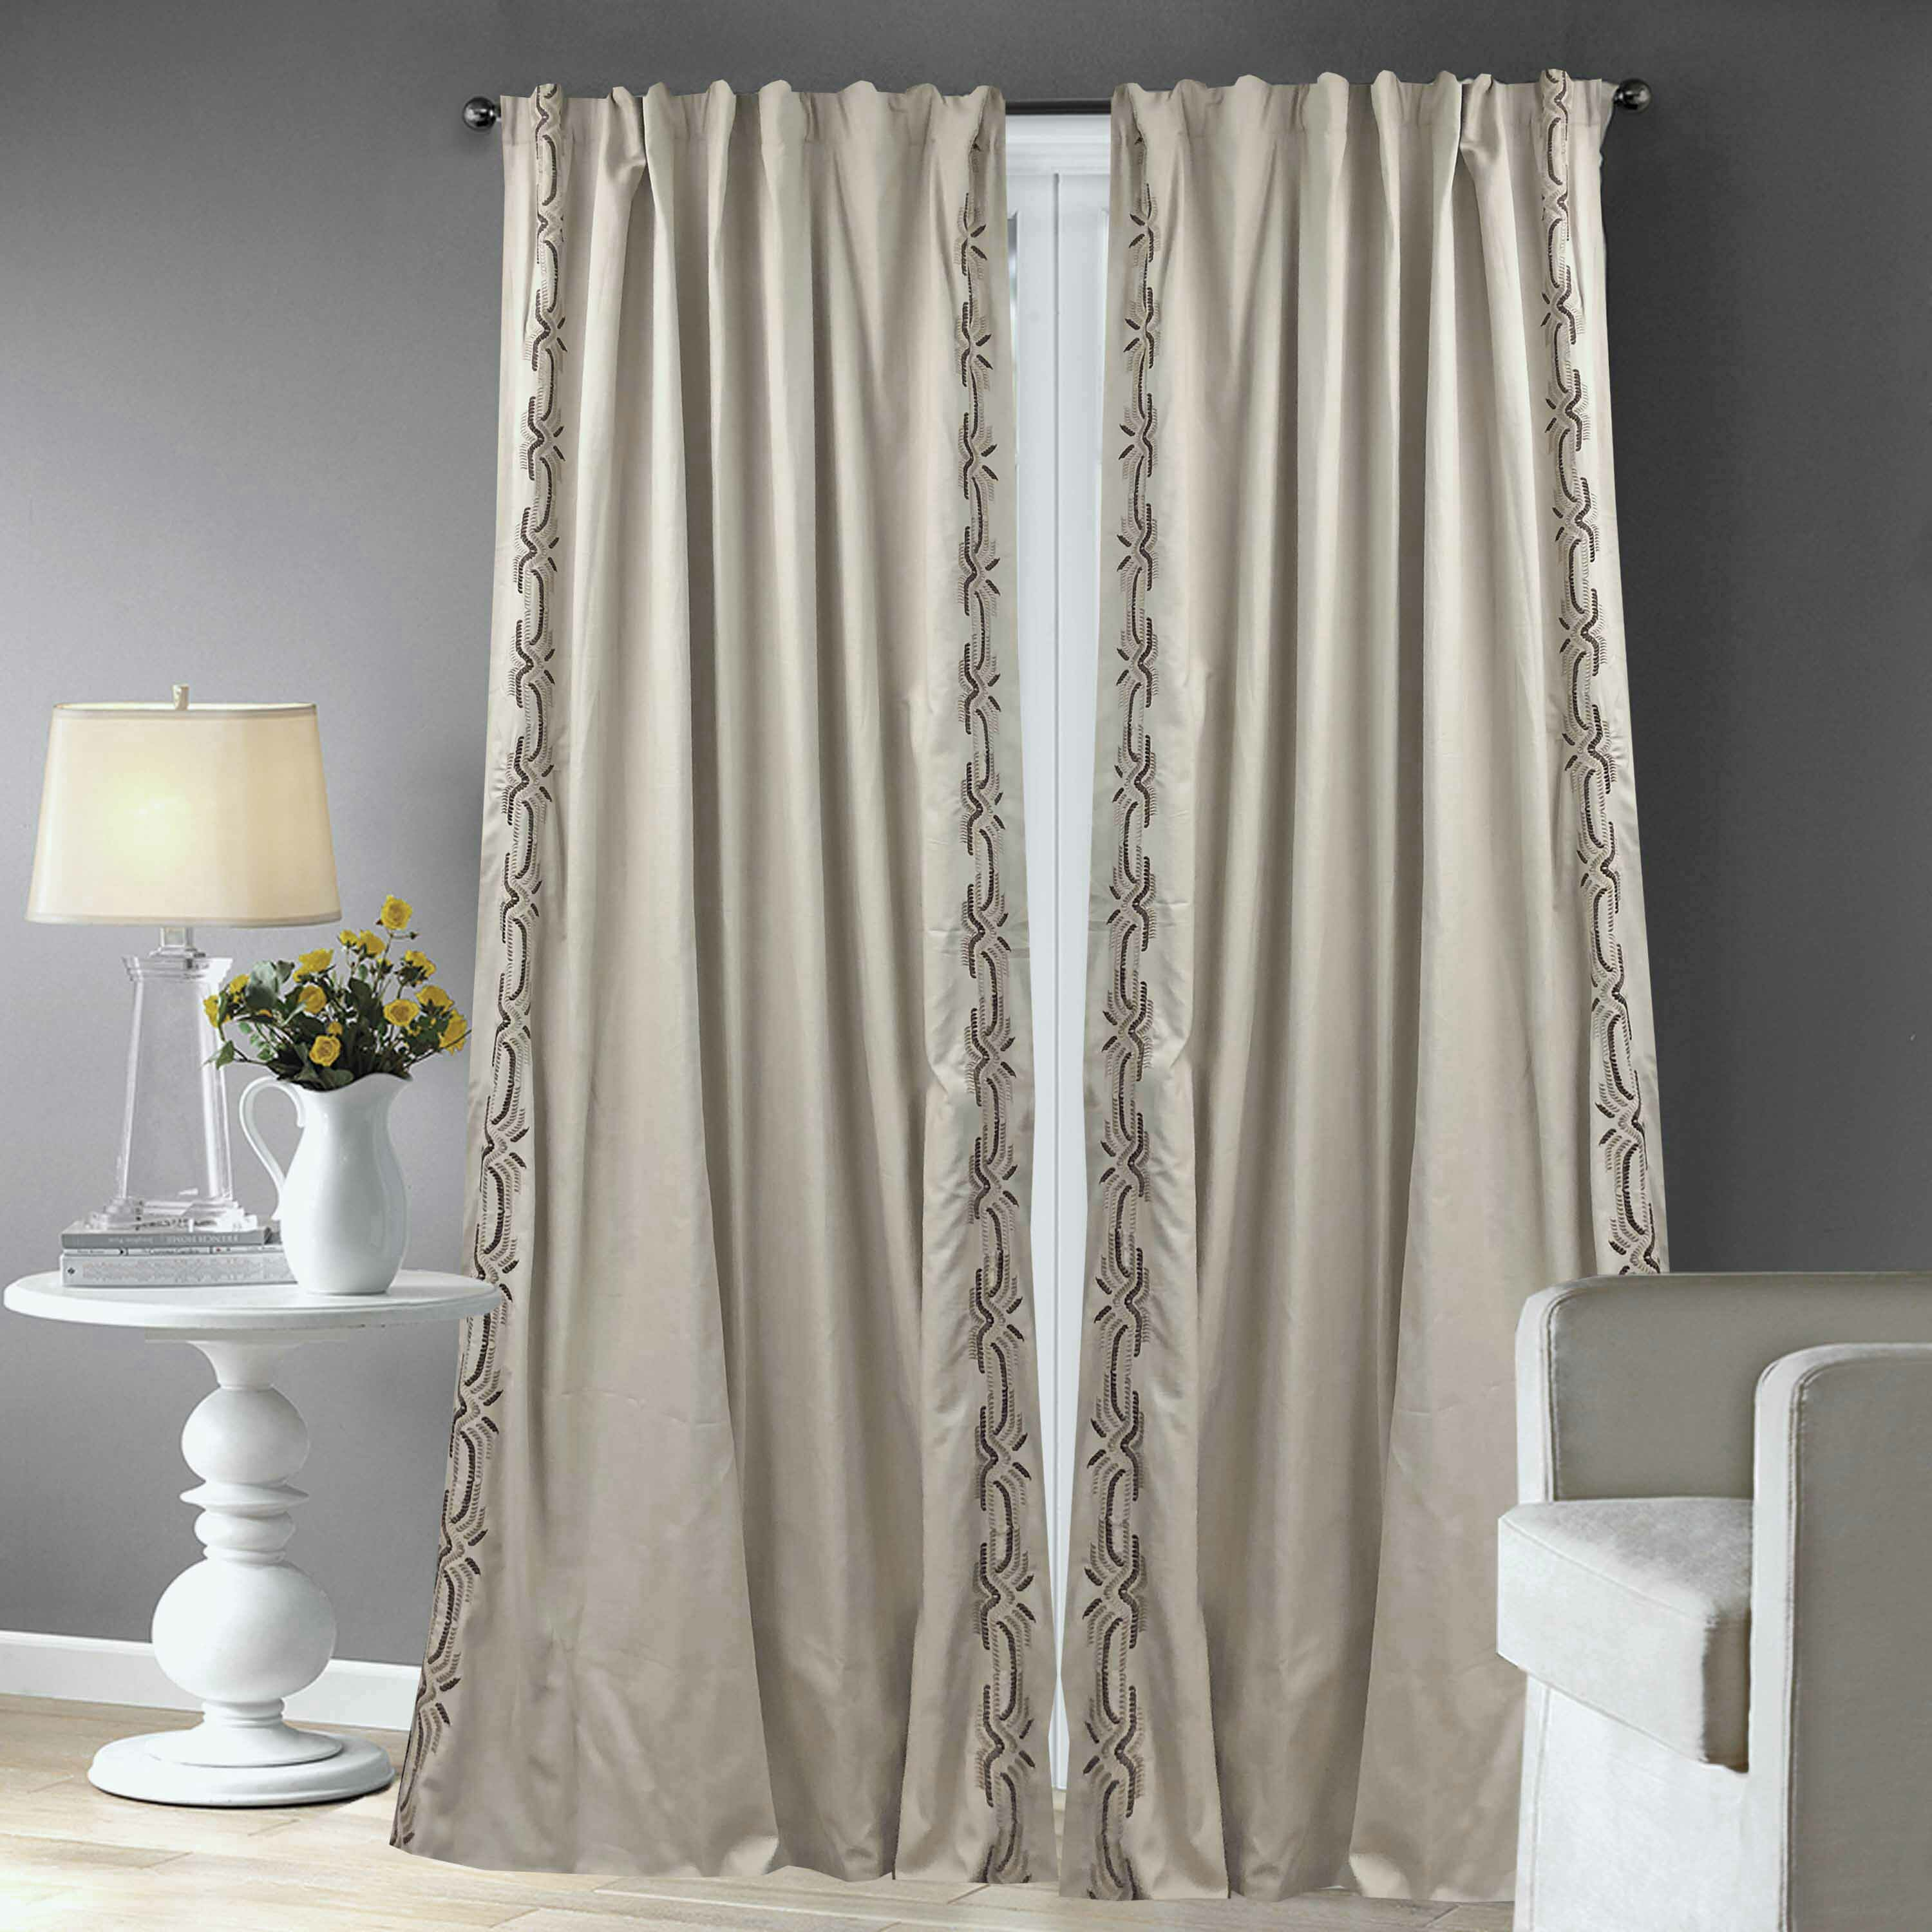 Alcott Hill Agostini Cotton Semi Sheer Rod Pocket Single Throughout Luxury Collection Faux Leather Blackout Single Curtain Panels (View 10 of 20)